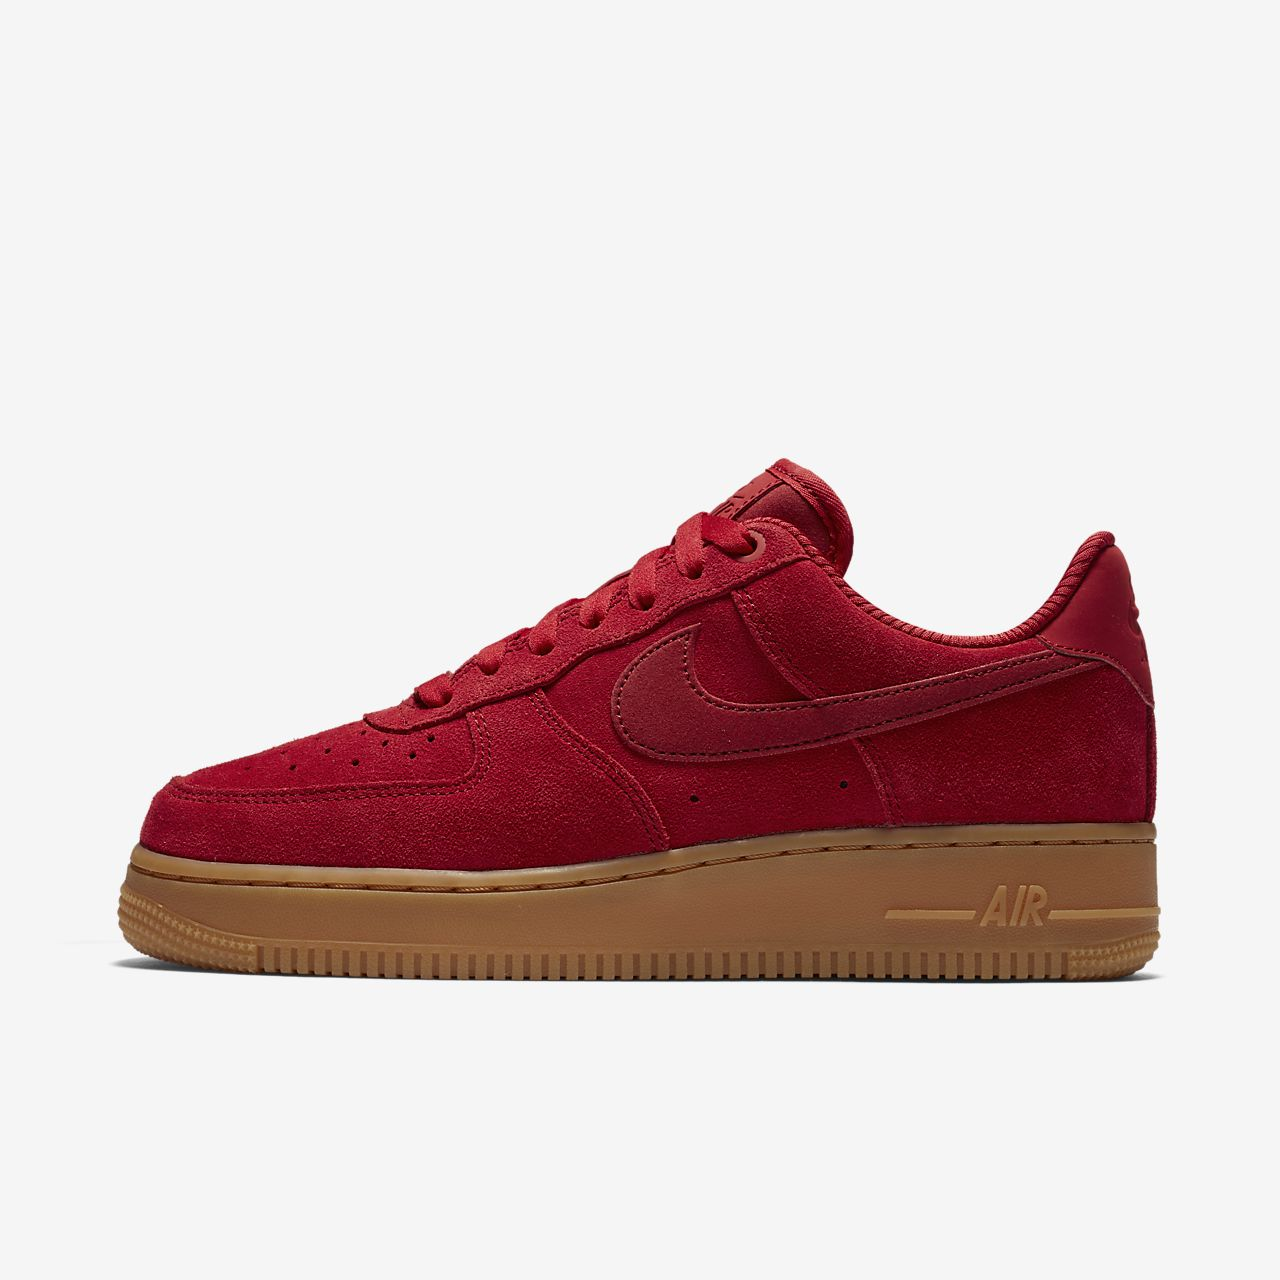 nike air force 1 low red woman got